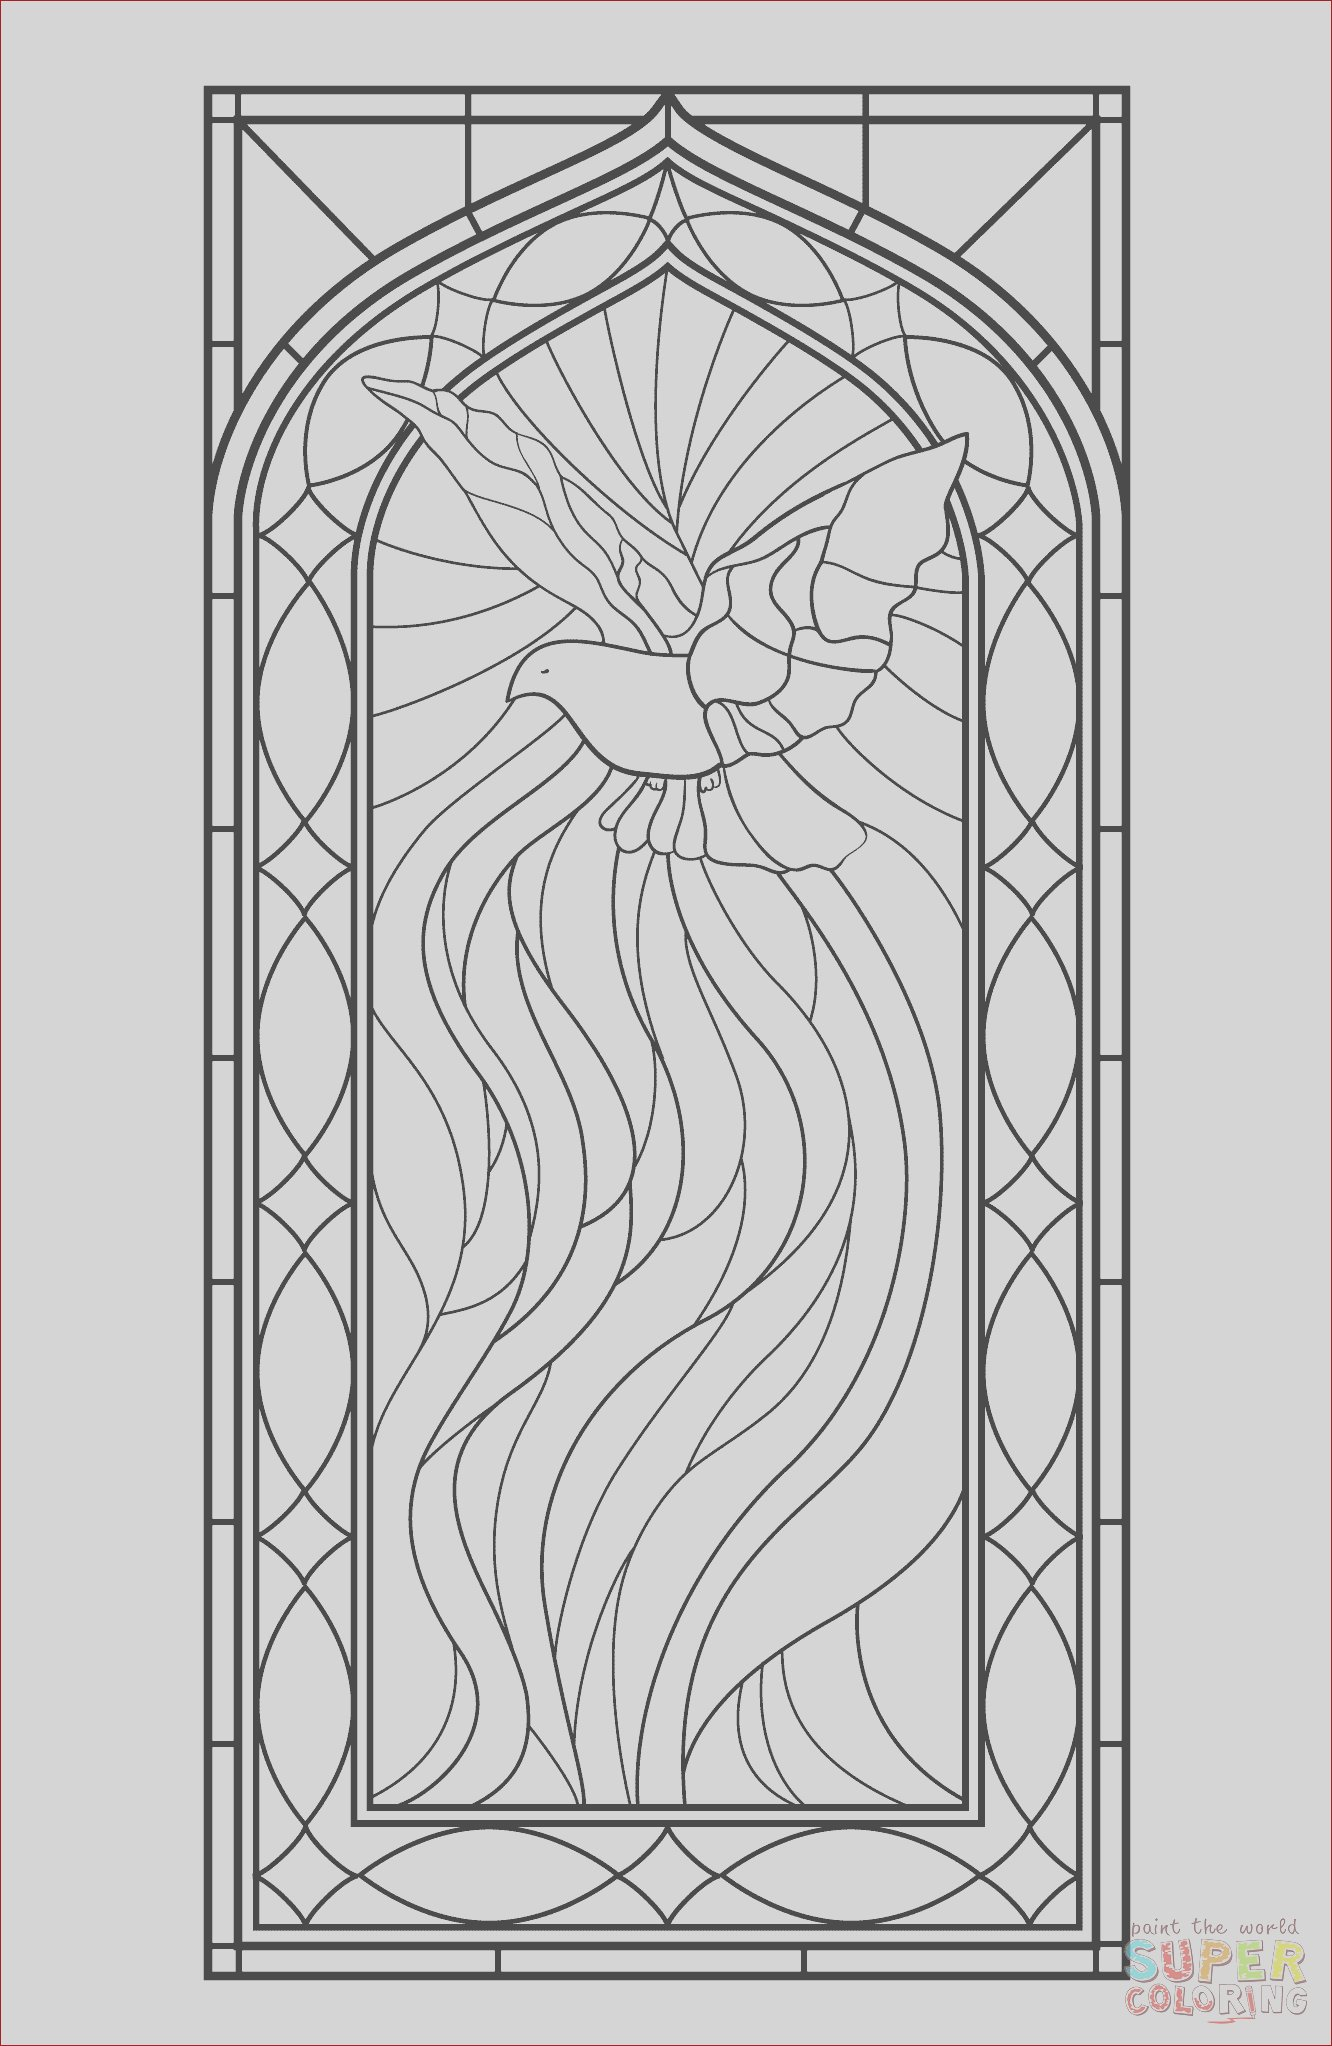 stained glass window with holy spirit